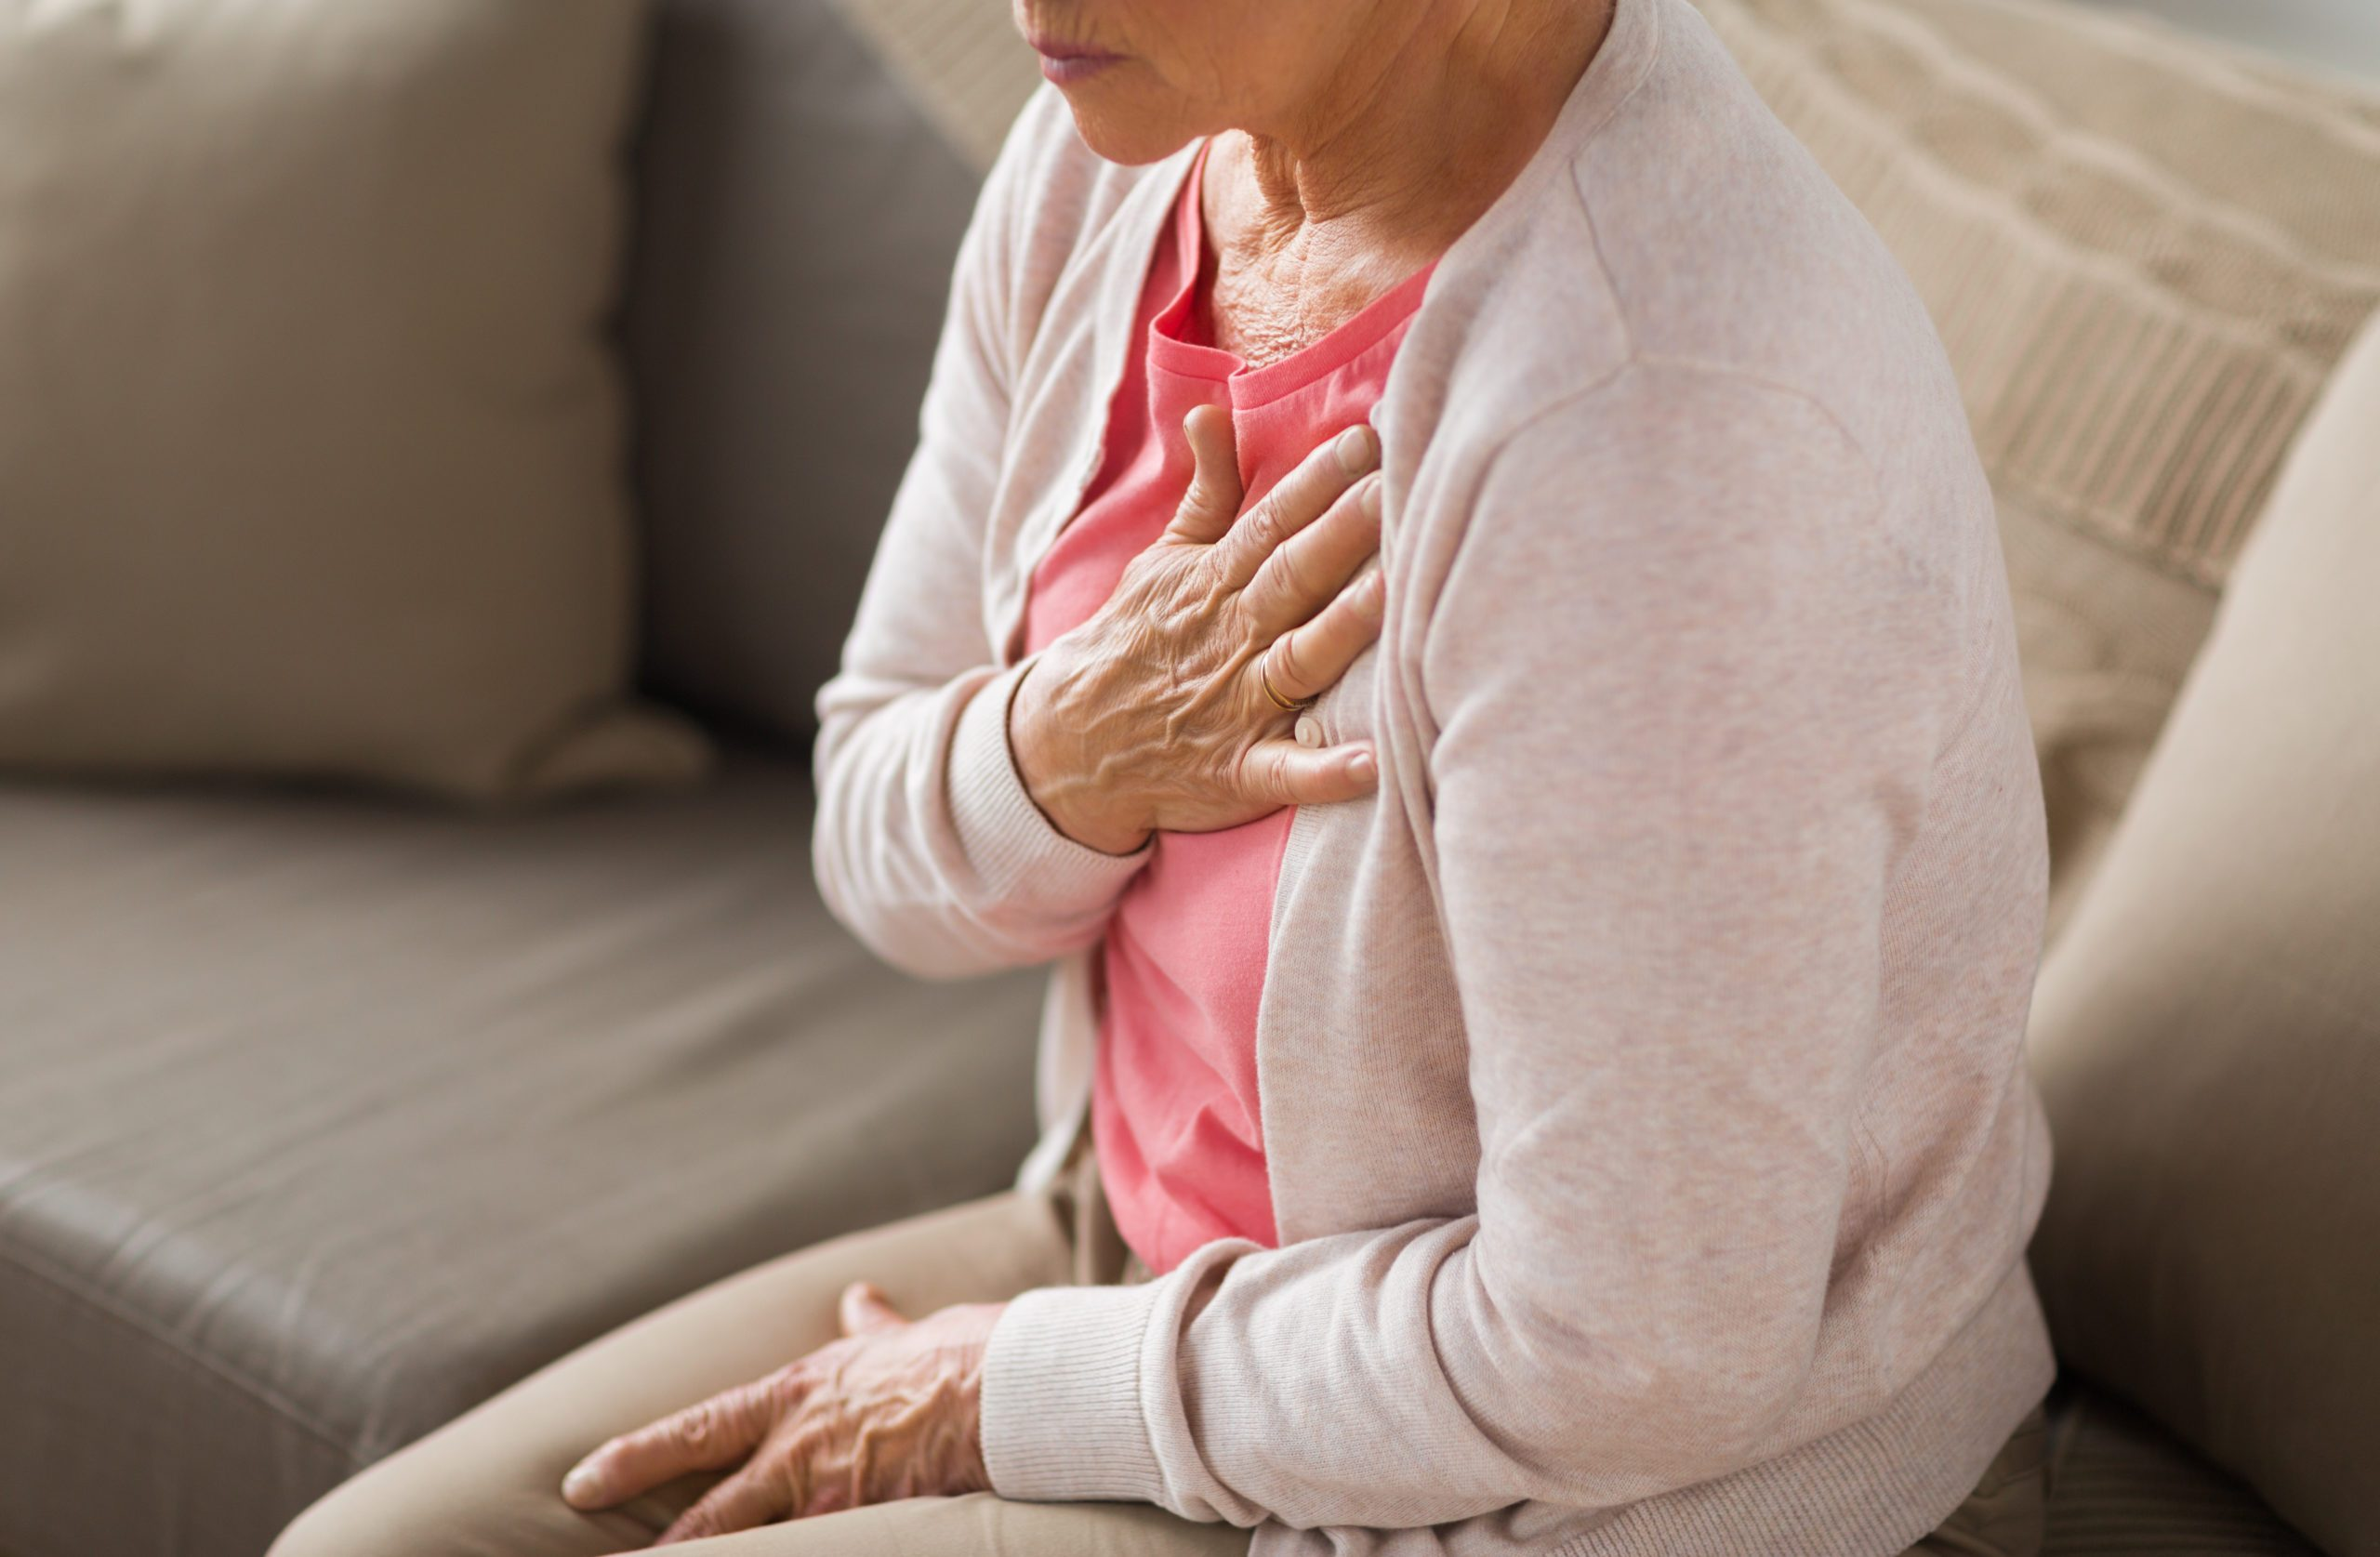 types of heart disease | woman clutching her heart